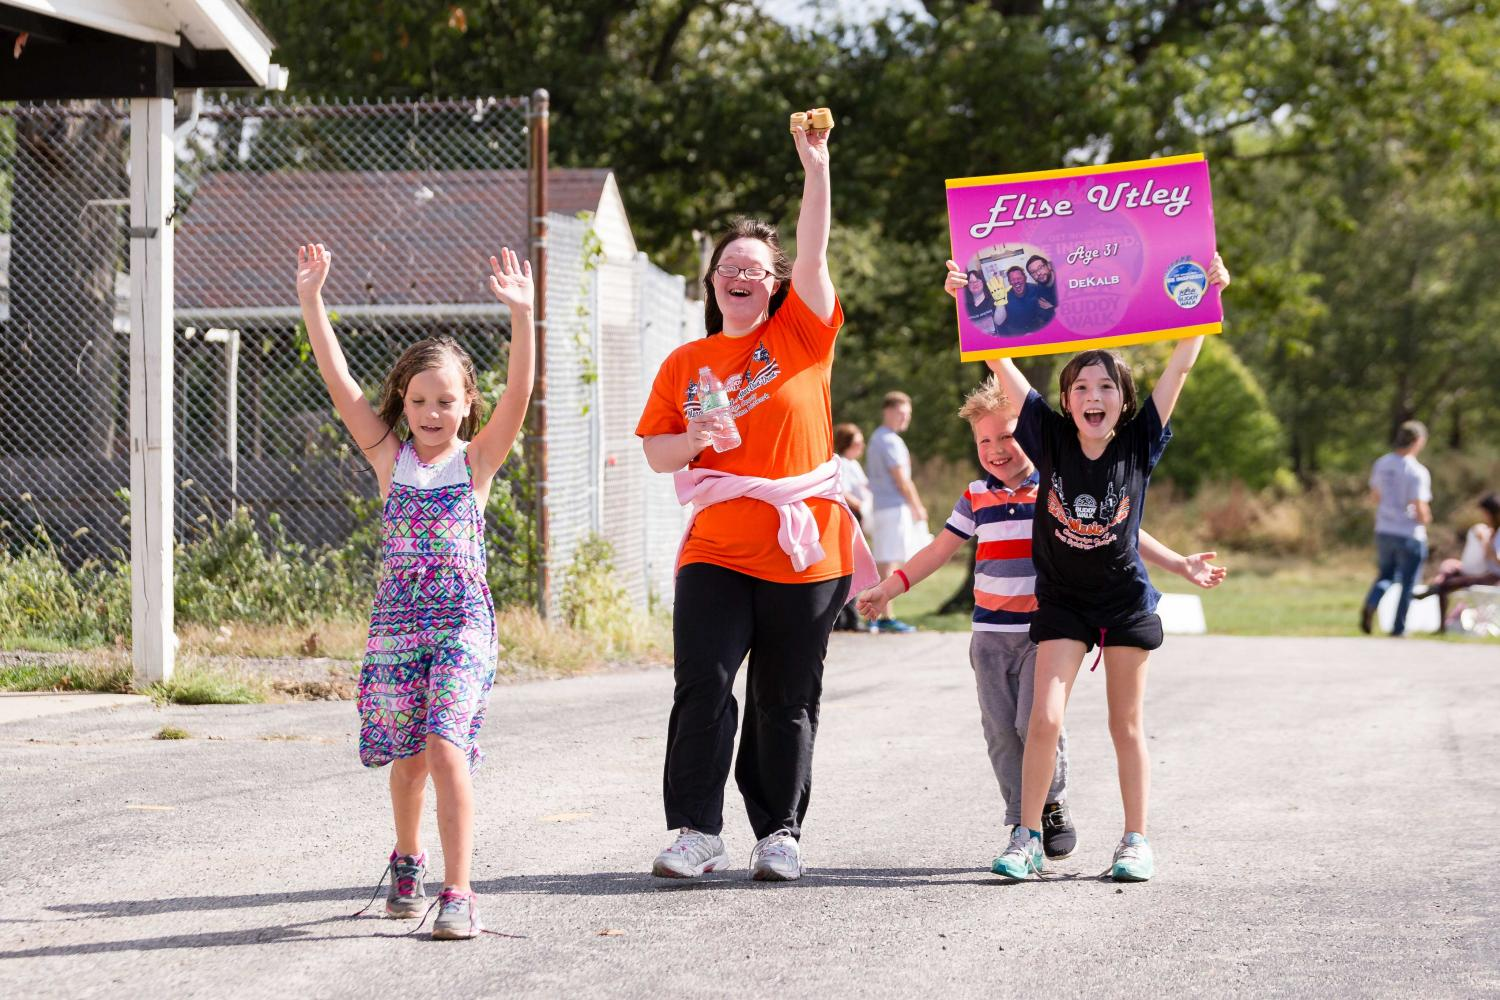 Elise Utley (orange) and her friends participate in the National Down Syndrome Society Buddy Walk at the Champaign County Fair Grounds on Saturday, October 7.